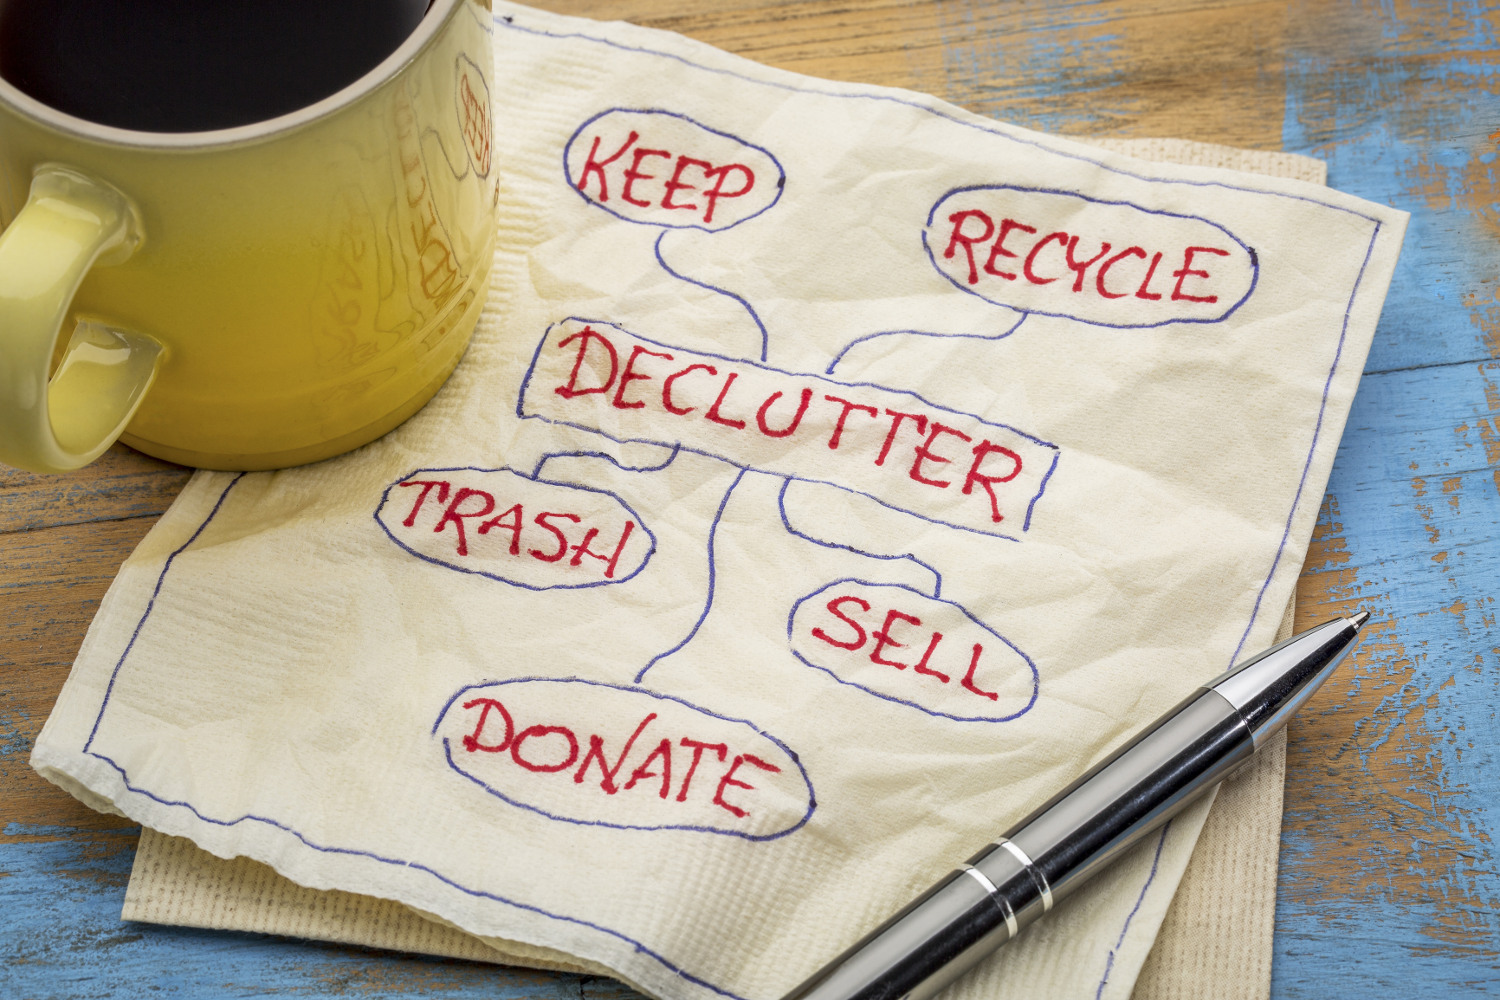 Getting Rid of Our Stuff Downsizing minimalist sell donate discard trash pare down save money budget travel solutions